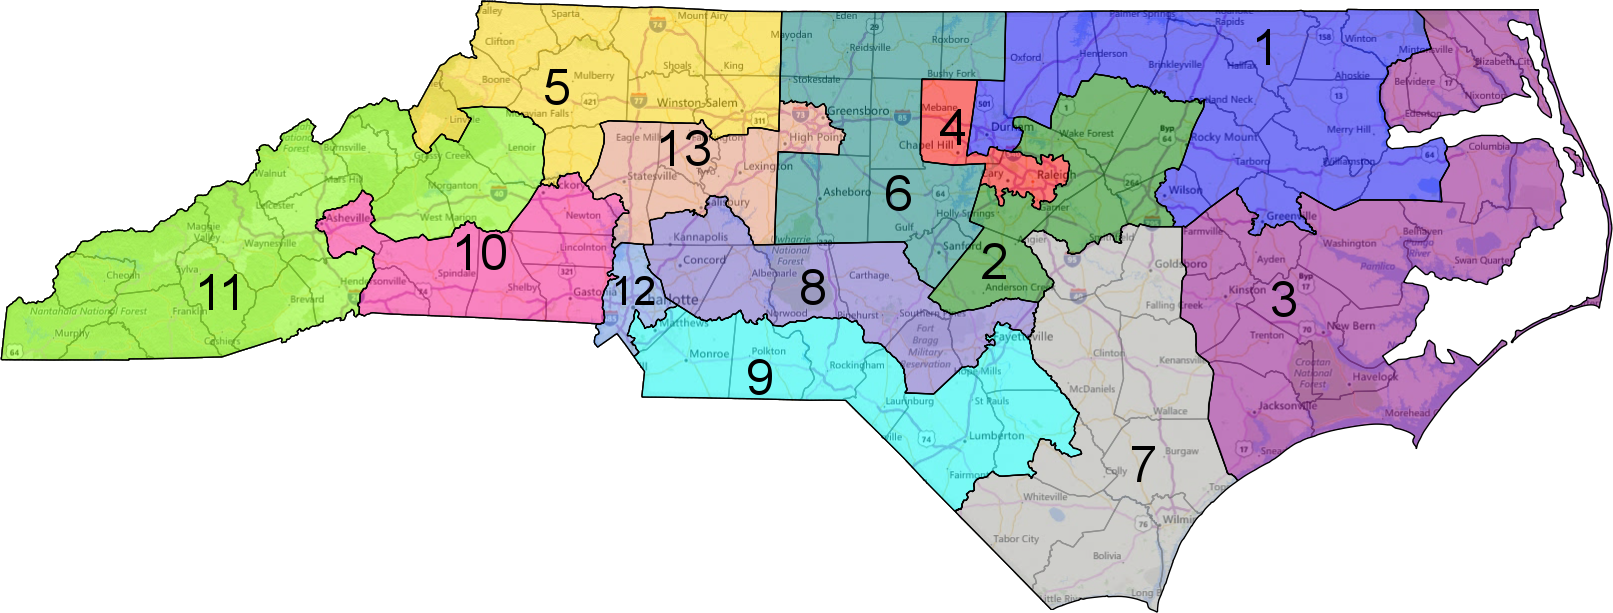 Map Of New York 8th Congressional District.No Maryland Is Not The Most Gerrymandered State There Is More To